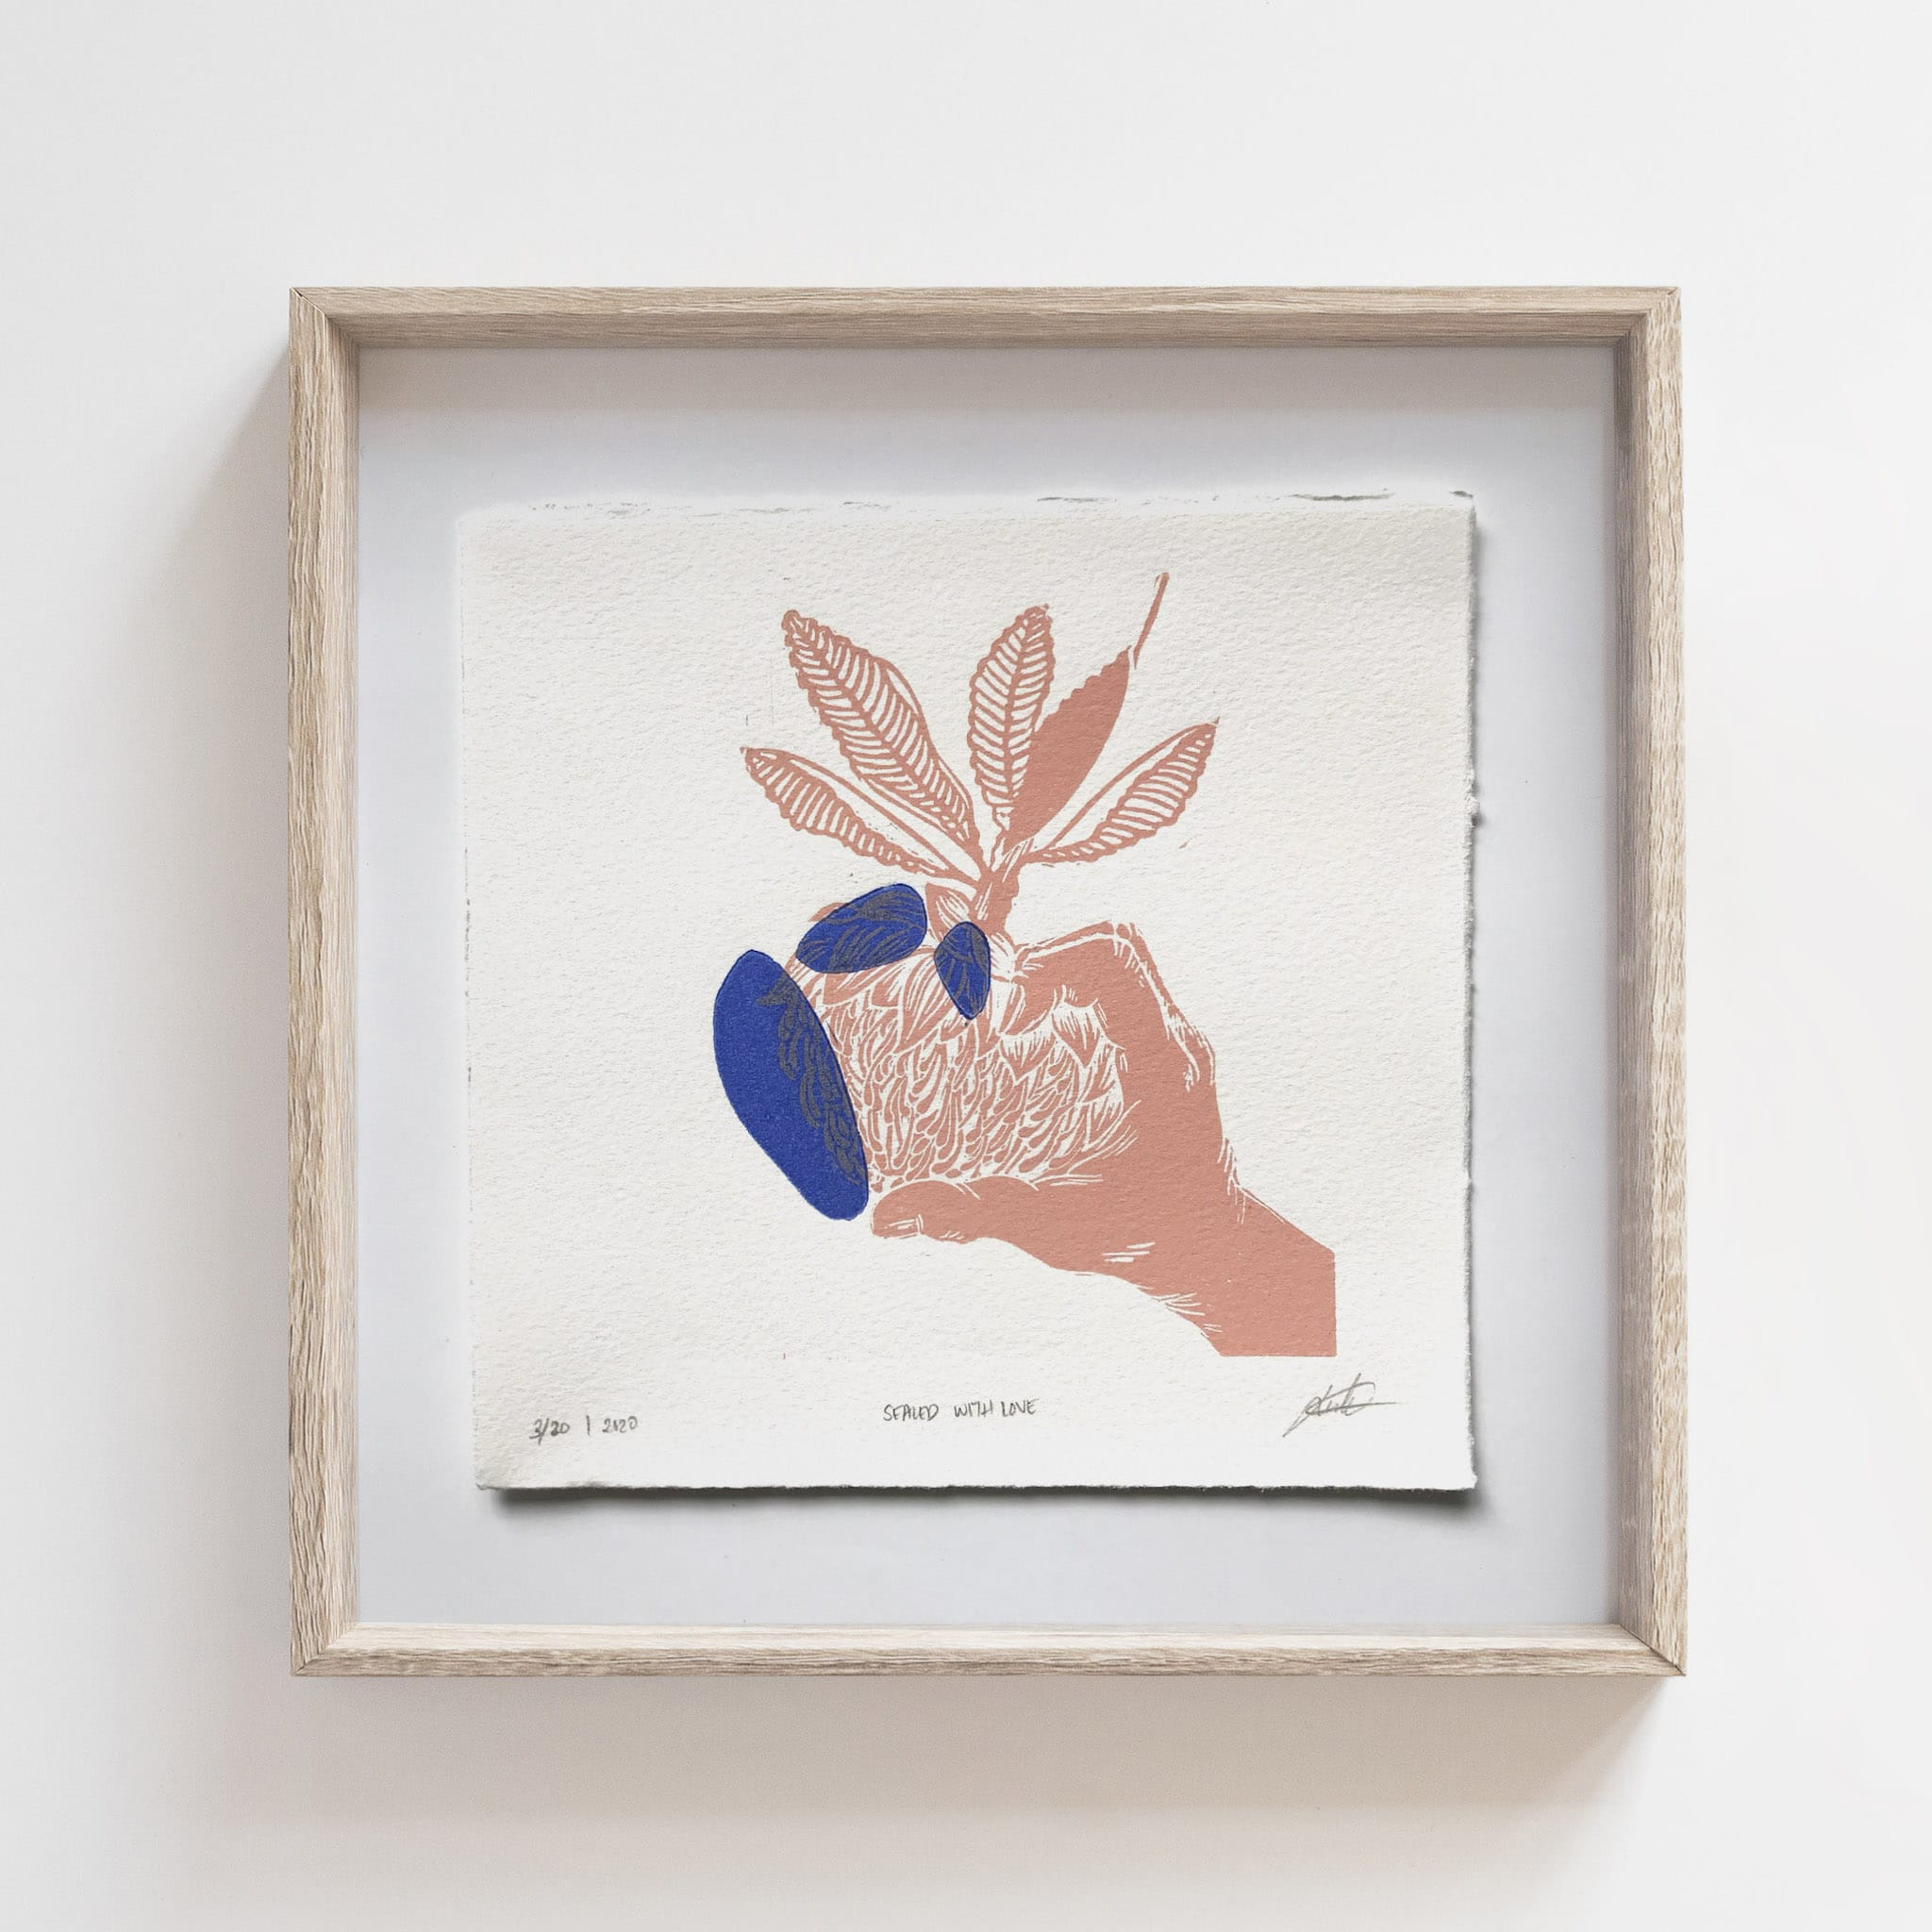 Limited Edition Linoprint 'Hands Series: Sealed With Love' – By Jocelin Meredith Artwork